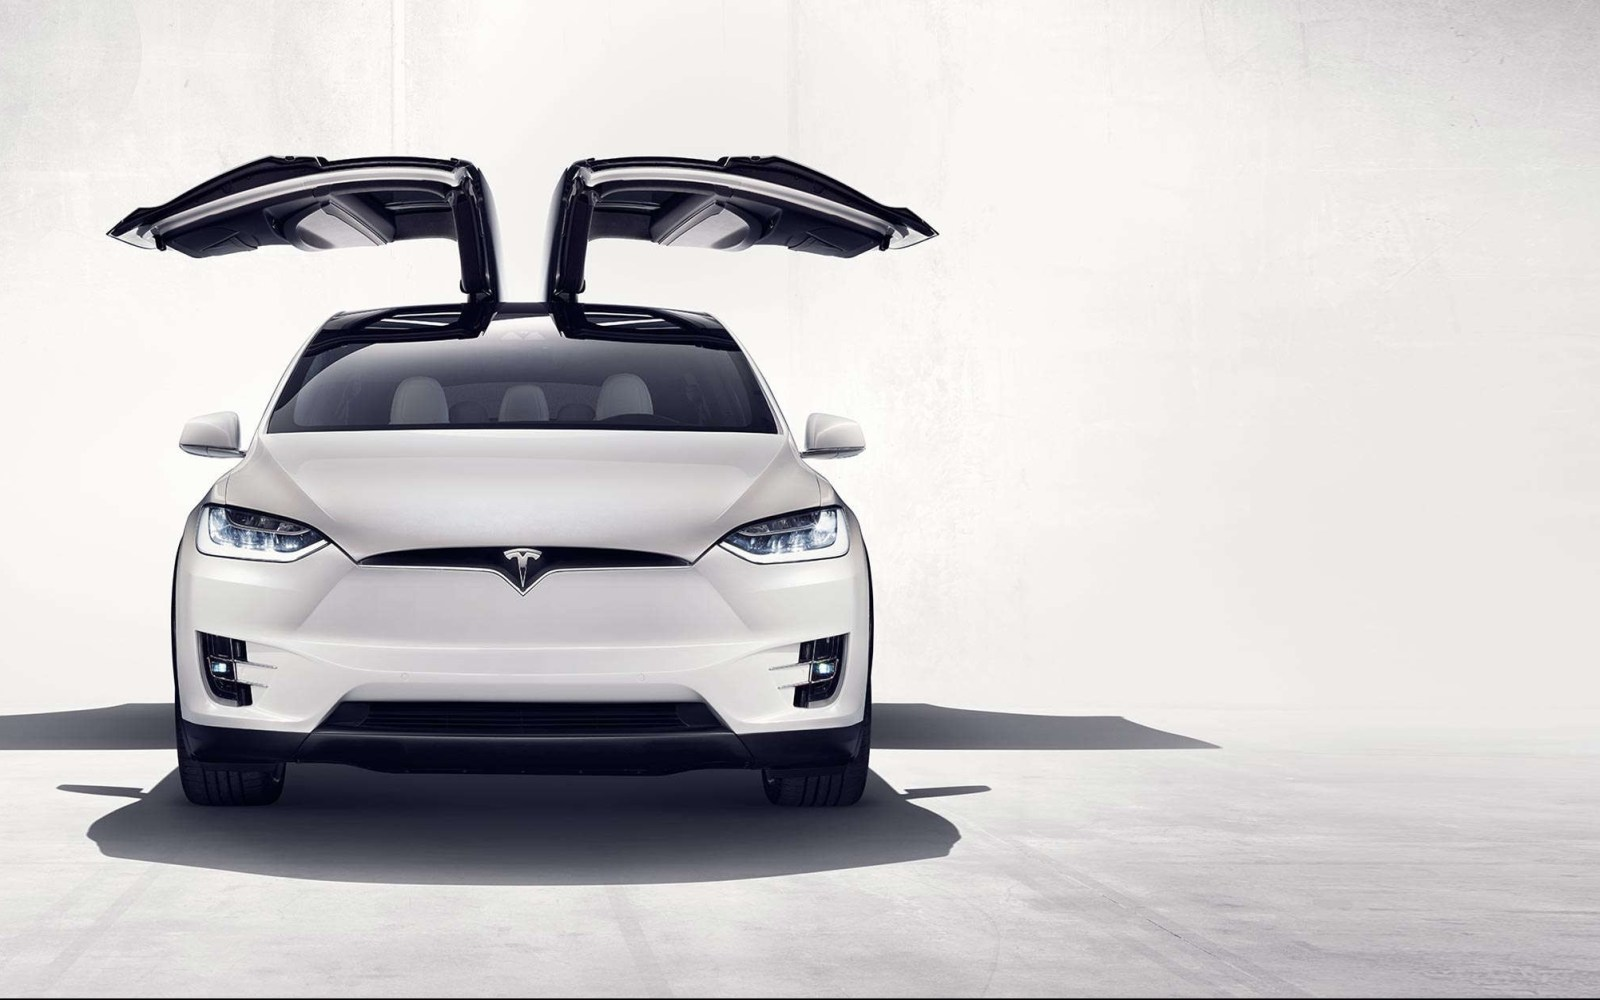 Tesla Model X is the first electric car eligible to the $25,000 'Hummer Tax Loophole'